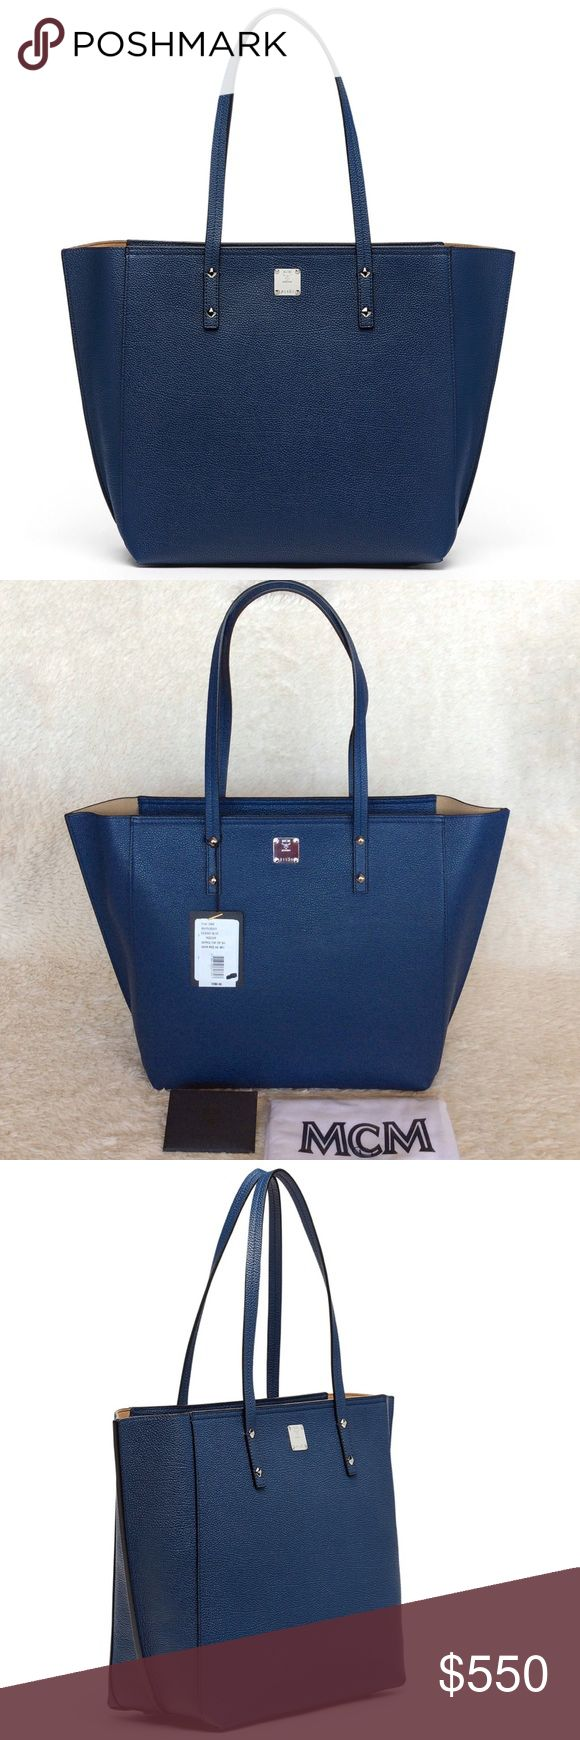 NEW MCM SOPHIE TOP ZIP LEATHER SHOPPER/ NAVY BLUE Authentic. Brand new with tags. This bag has dust bag and the care cards. PLEASE NO TRADE. THE PRICE IS FIRM. The Sophie Collection defines minimalist luxury with soft, lightweight chic leather designs in modern colors. The Medium Shopper features two easy carrying handles and roomy compartment with top zip closure to secure valuables. Shiny silver-tone cobalt hardware throughout. Sophie Top Zip Leather Shopper. Top zip closure to keep items…